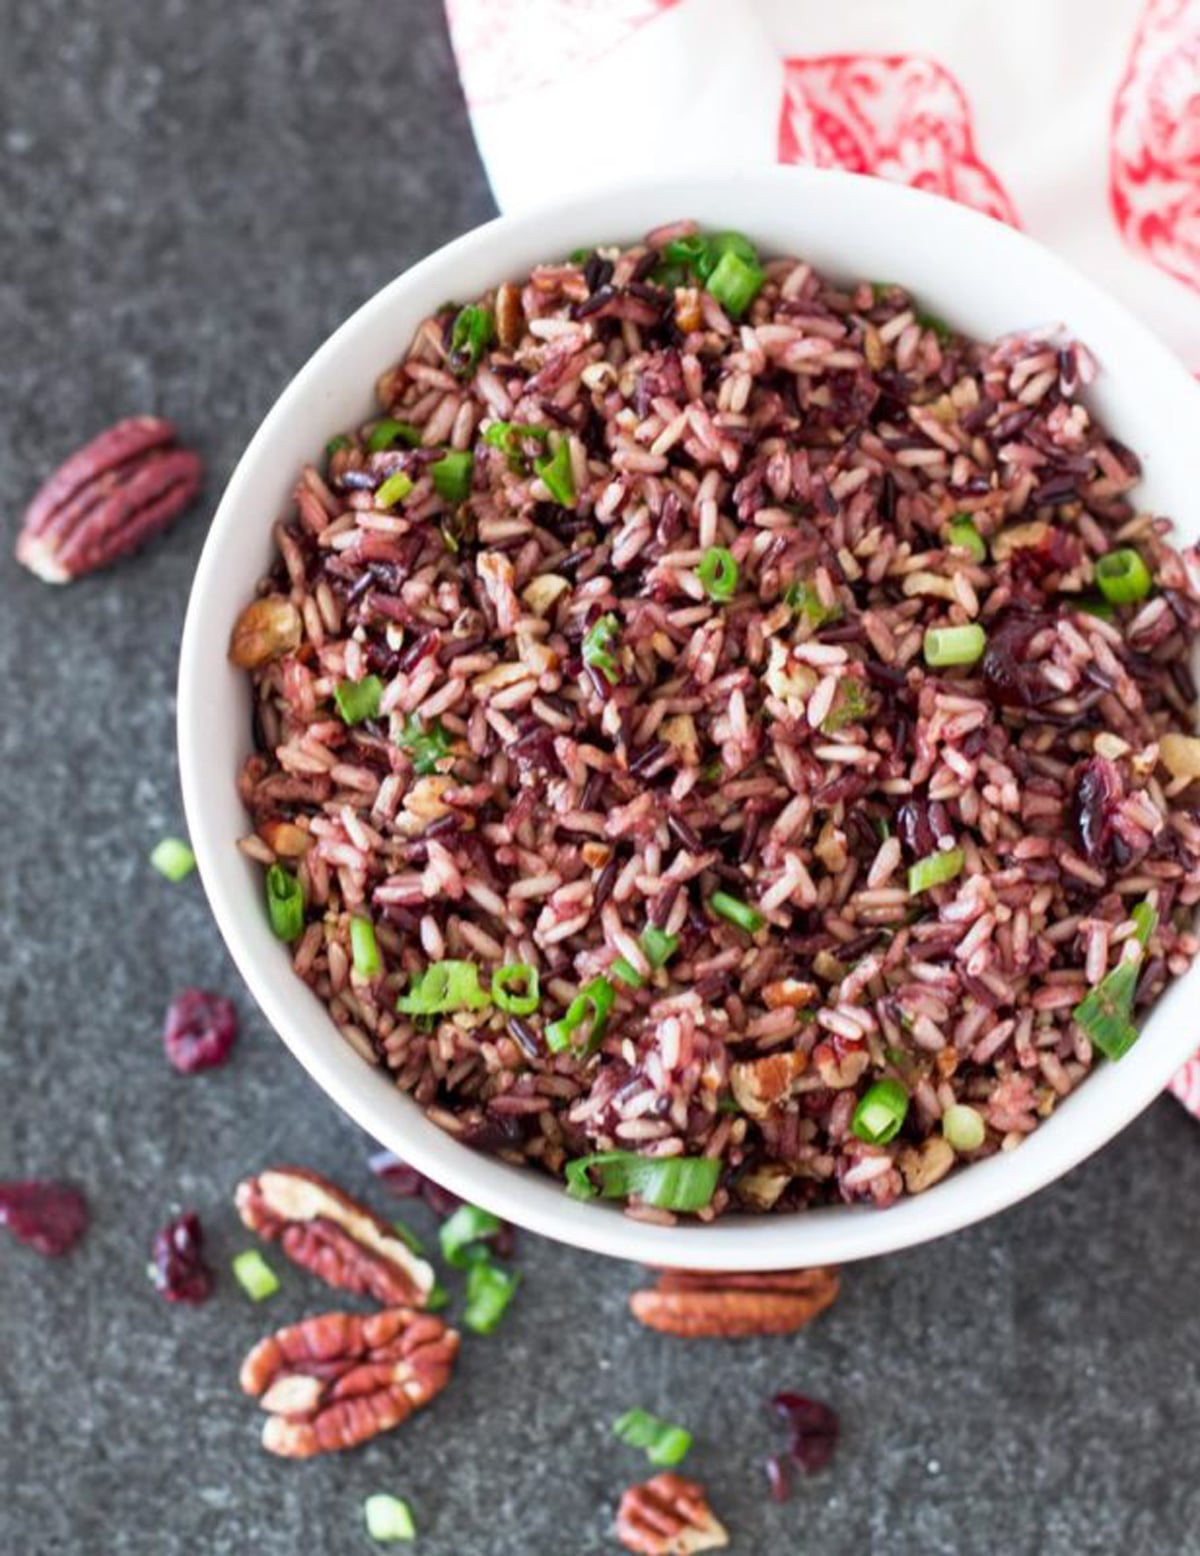 White bowl containing wild rice topped with scallions, pecans and dried cranberries on table.